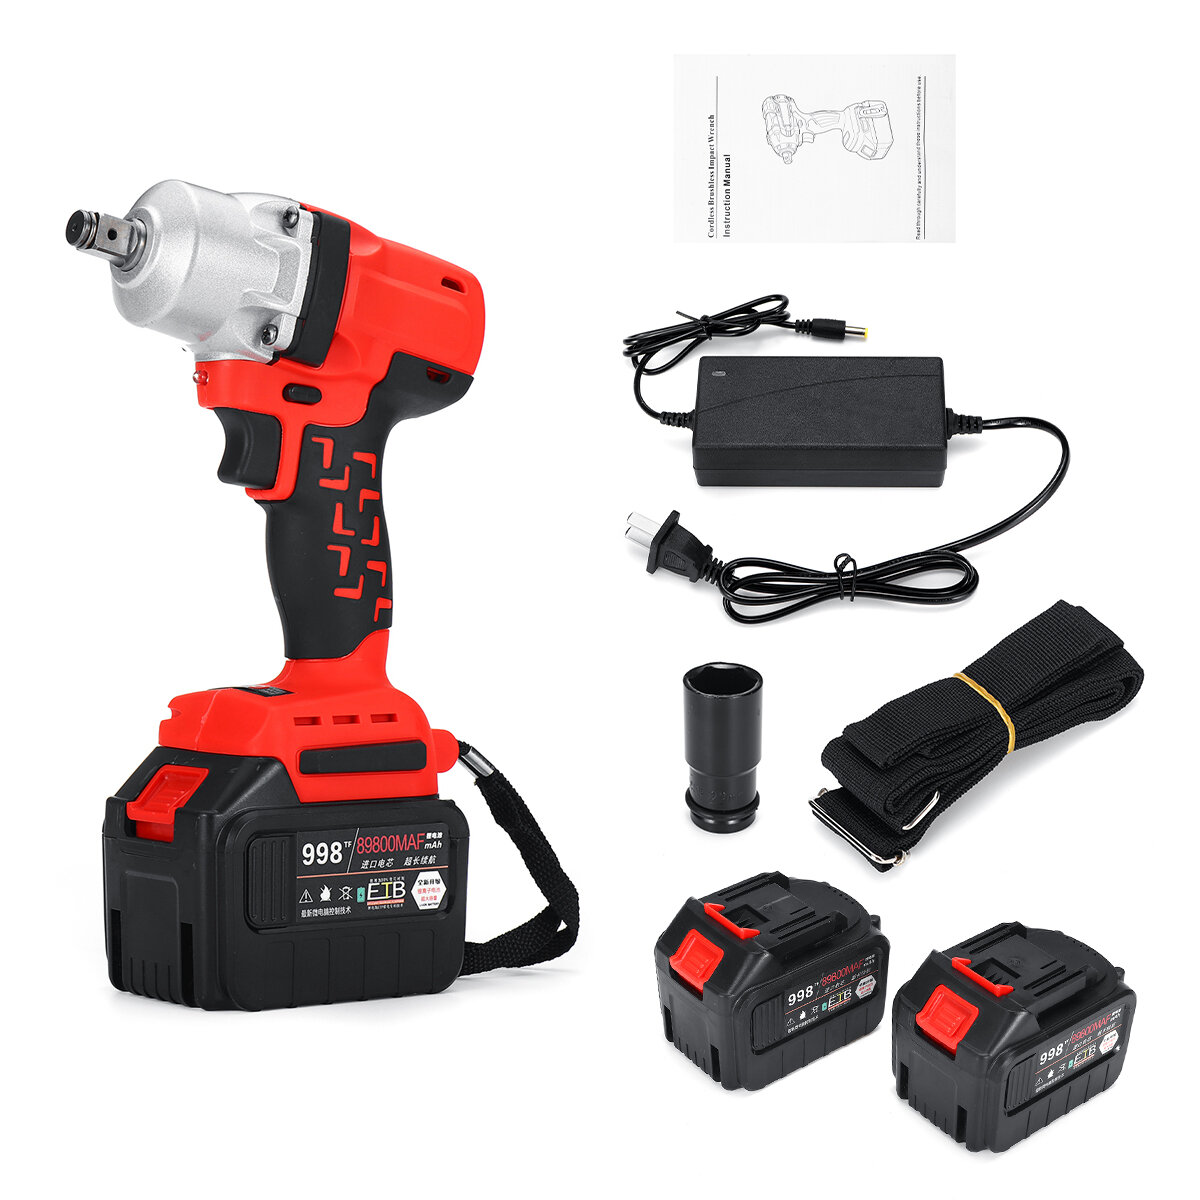 600Nm 89800mAh 1/2'' Brushless Electric Impact Wrench Power Driver Cordless Torque Tool